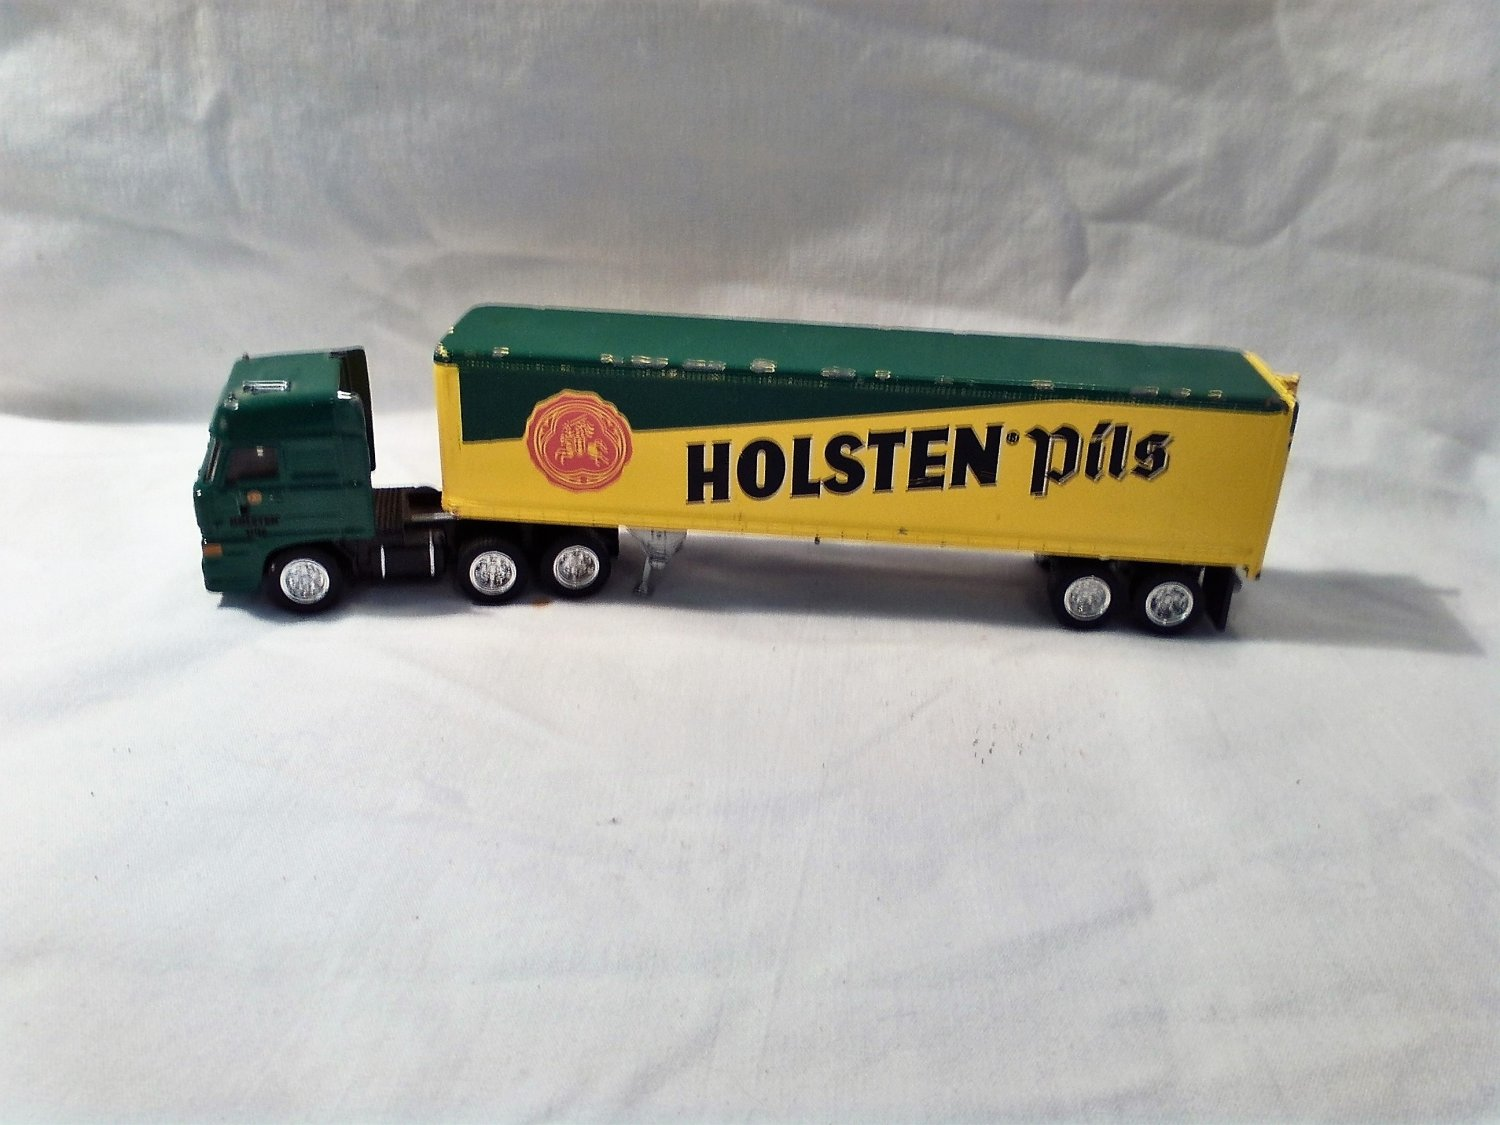 Matchbox Ultra Holsten Pils Trailer Truck CCY08 1987 Green and Yellow DAF 3300 Space Cab (mw) (GTB1)